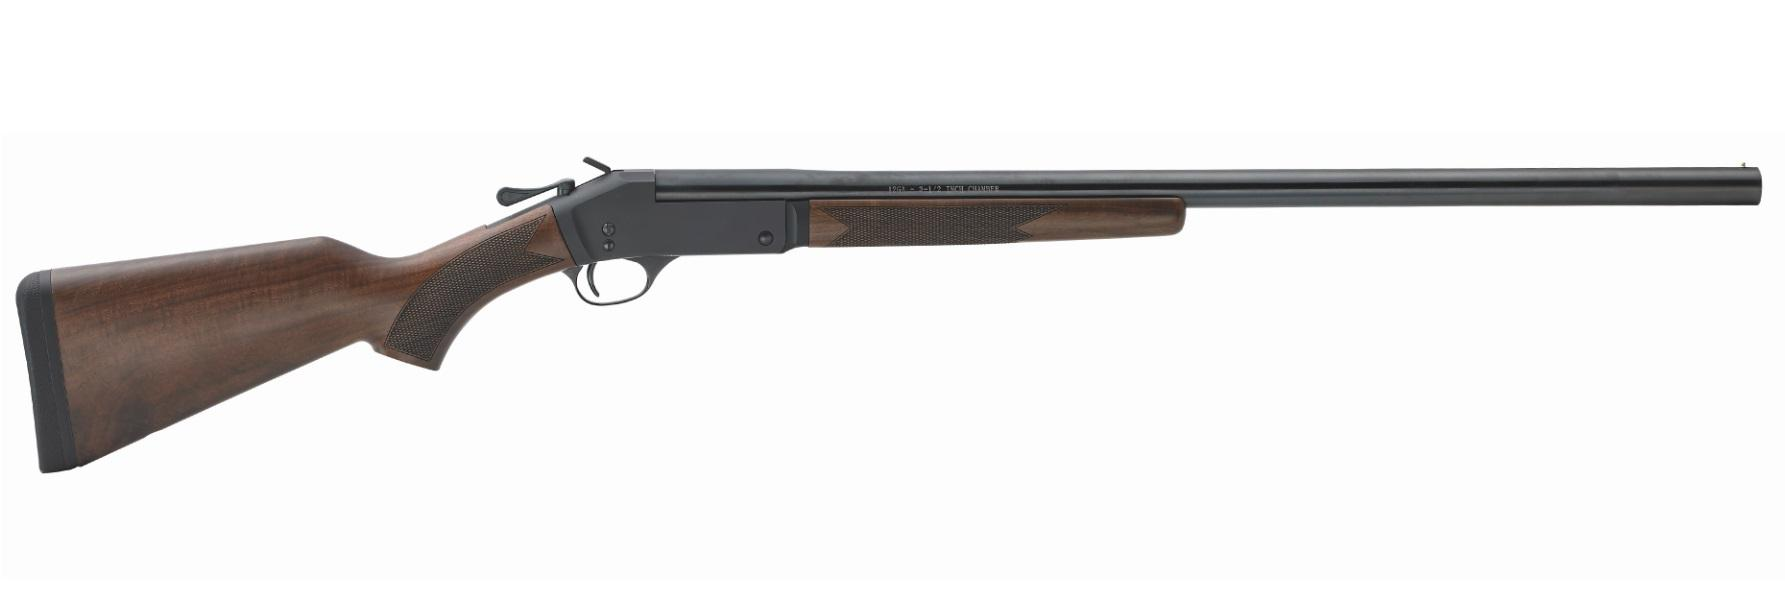 Henry Repeating Arms  Single Shot Shotgun-img-4